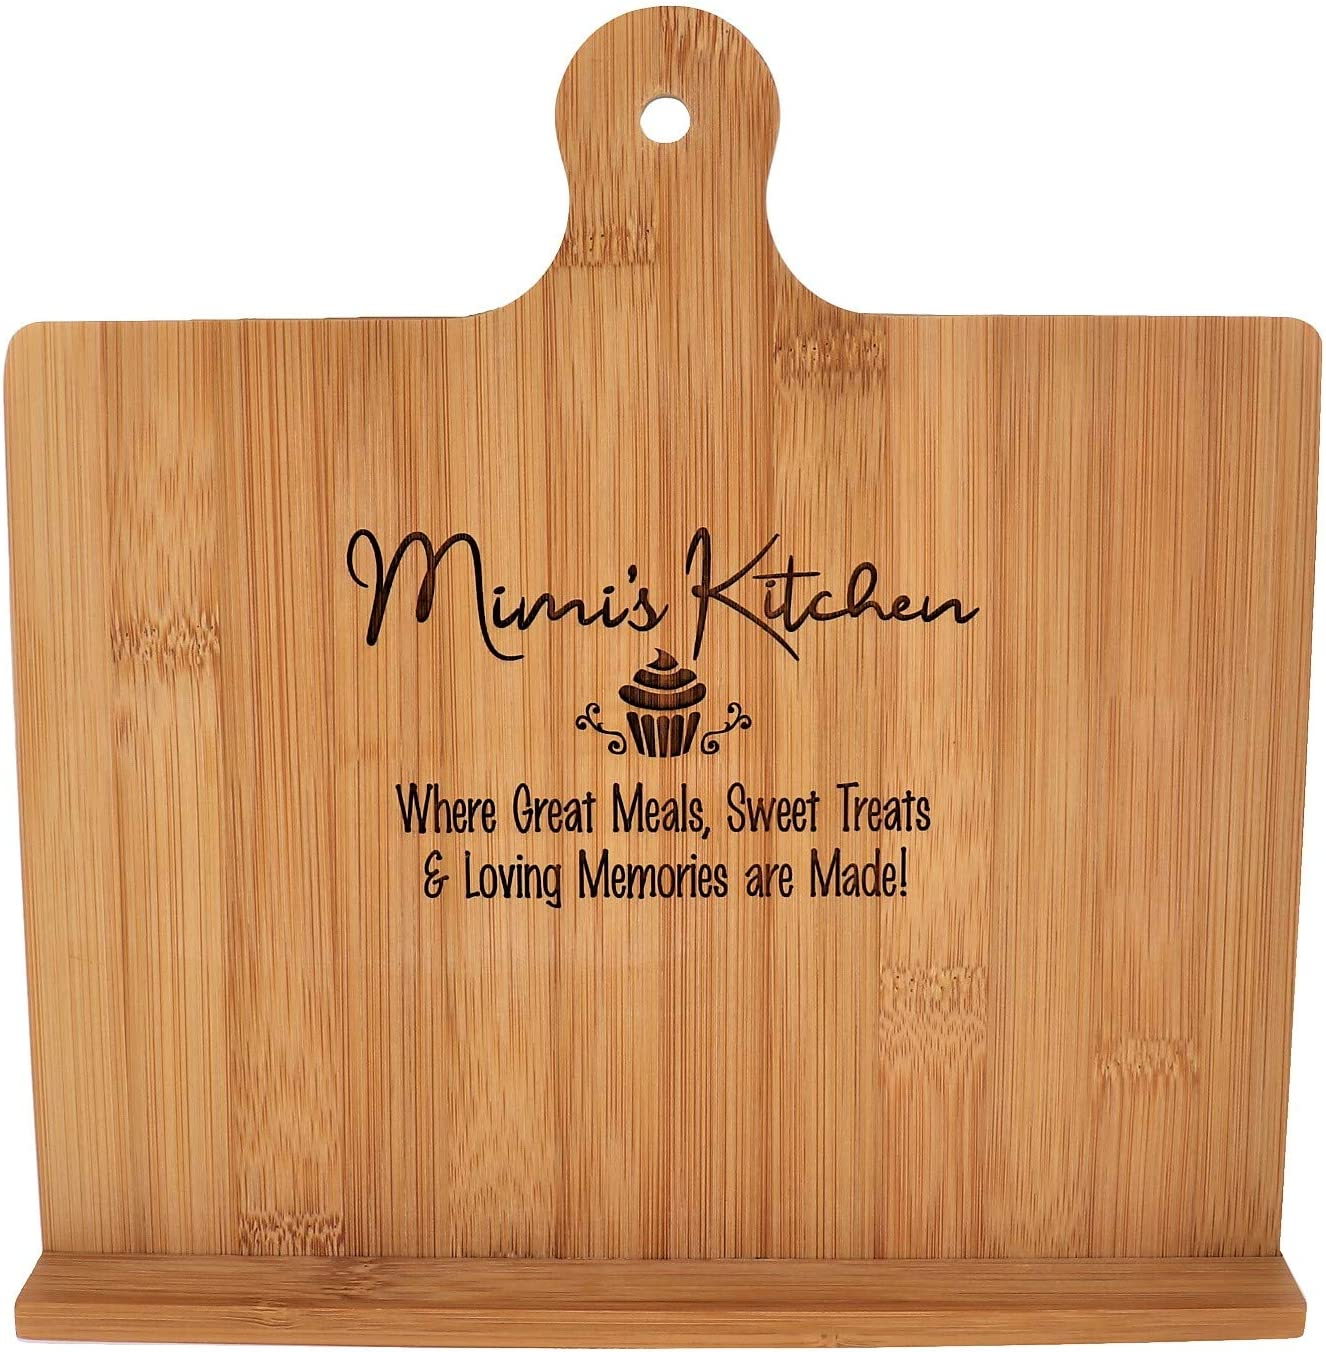 10.25x10.25 Mimi Gift Cookbook Stand Recipe Holder Custom Engraved Bamboo Cutting Board Foldable Chef Easel Metal Hinge Kickstand iPad Tablet Compatible Christmas Birthday Mother Day Kitchen Decor